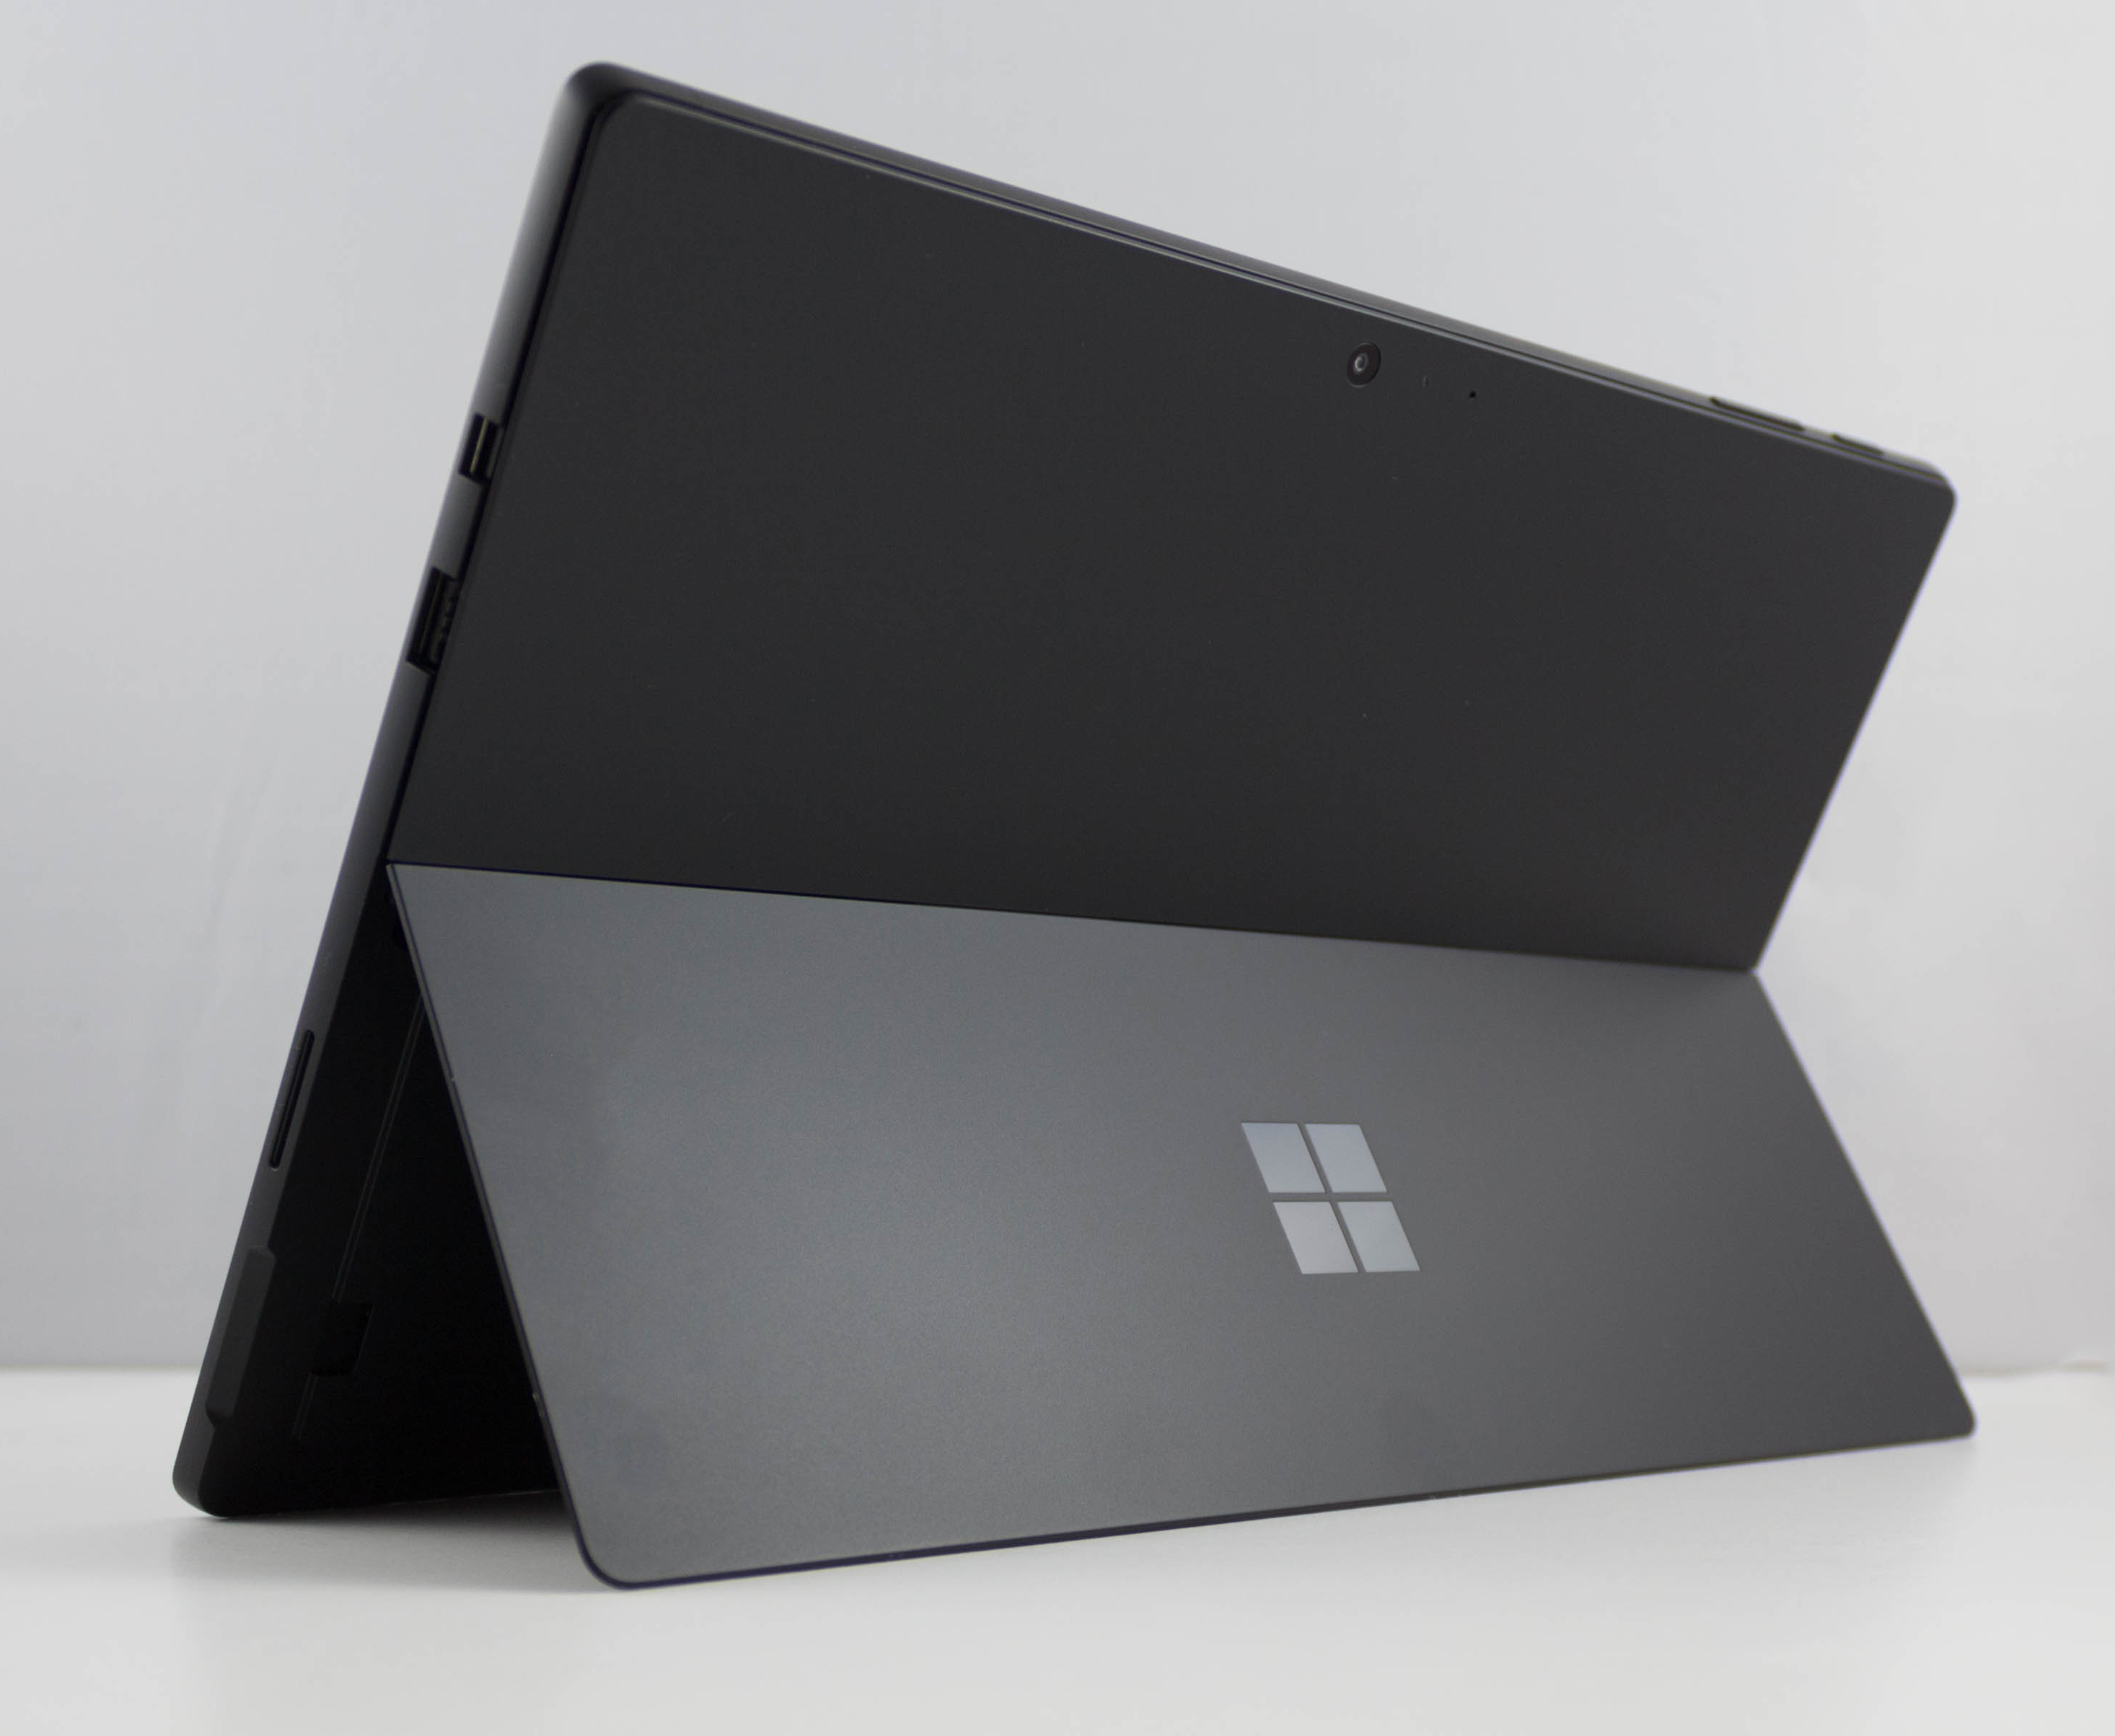 Design - The Microsoft Surface Pro 6 Review: More Than A Color